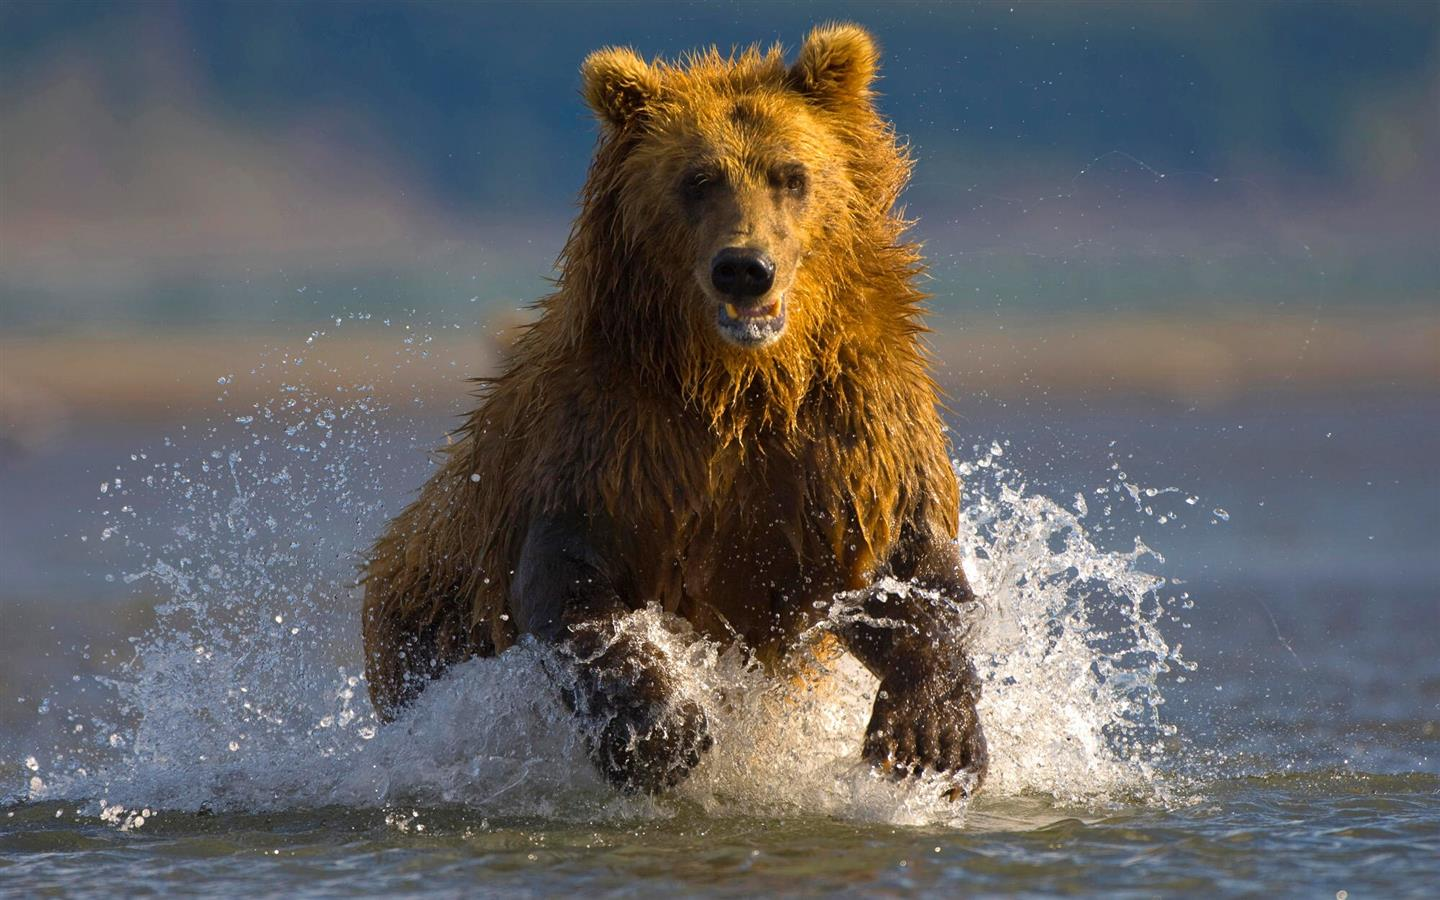 1440x900 Animal Bear in River HD Wallpaper